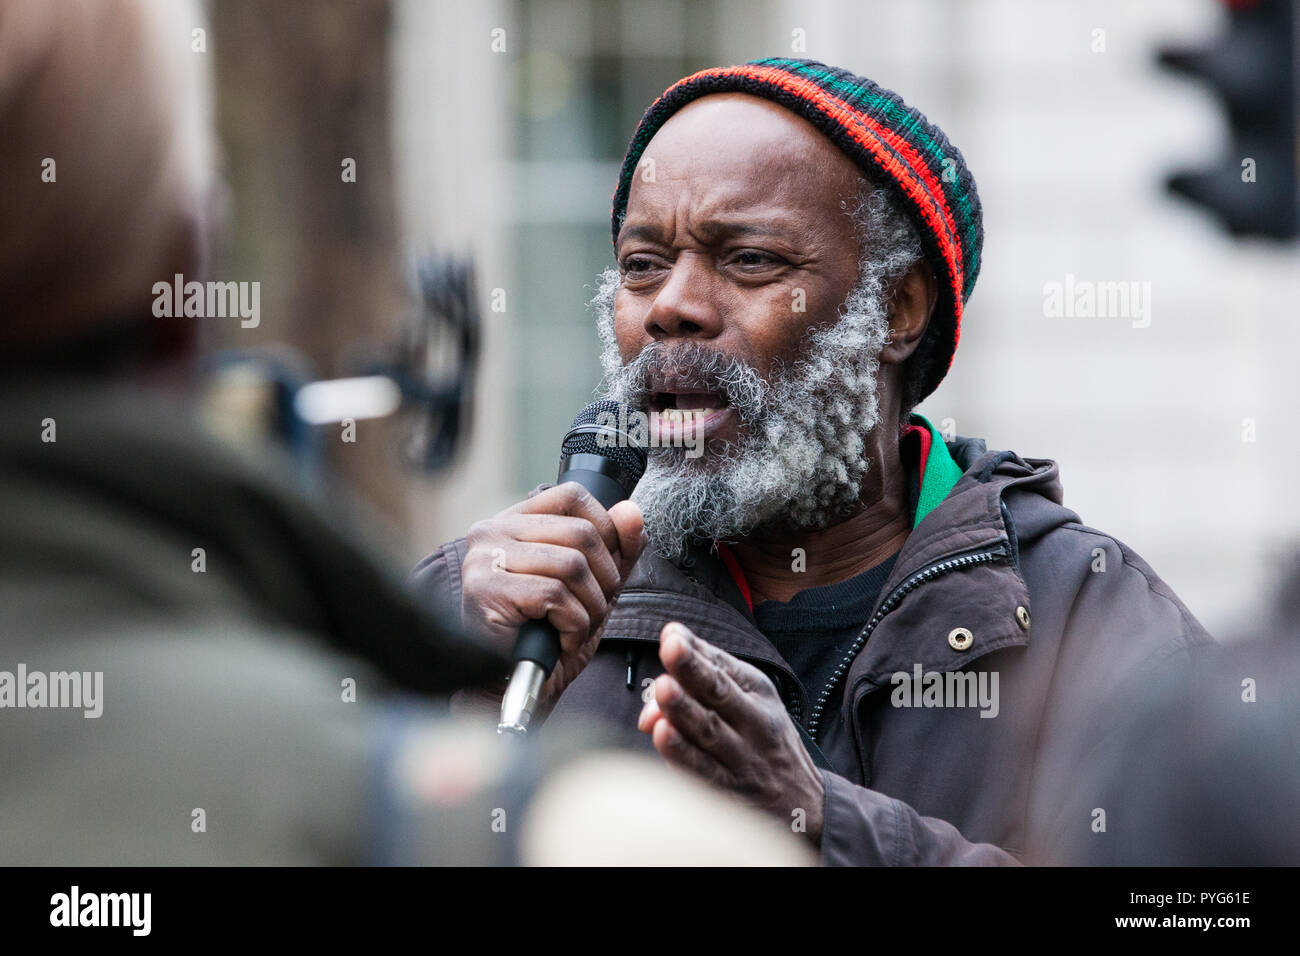 London, UK. 27th October, 2018. Brother Minka of the Pan African Community Forum addresses campaigners from the United Families and Friends Campaign (UFFC) taking part in the 20th annual procession to Downing Street in remembrance of family members and friends who died in police custody, prison, immigration detention or secure psychiatric hospitals. UFFC was set up in 1997 by families who had lost loved ones at the hands of the state with the intention of challenging systemic injustice. Credit: Mark Kerrison/Alamy Live News - Stock Image